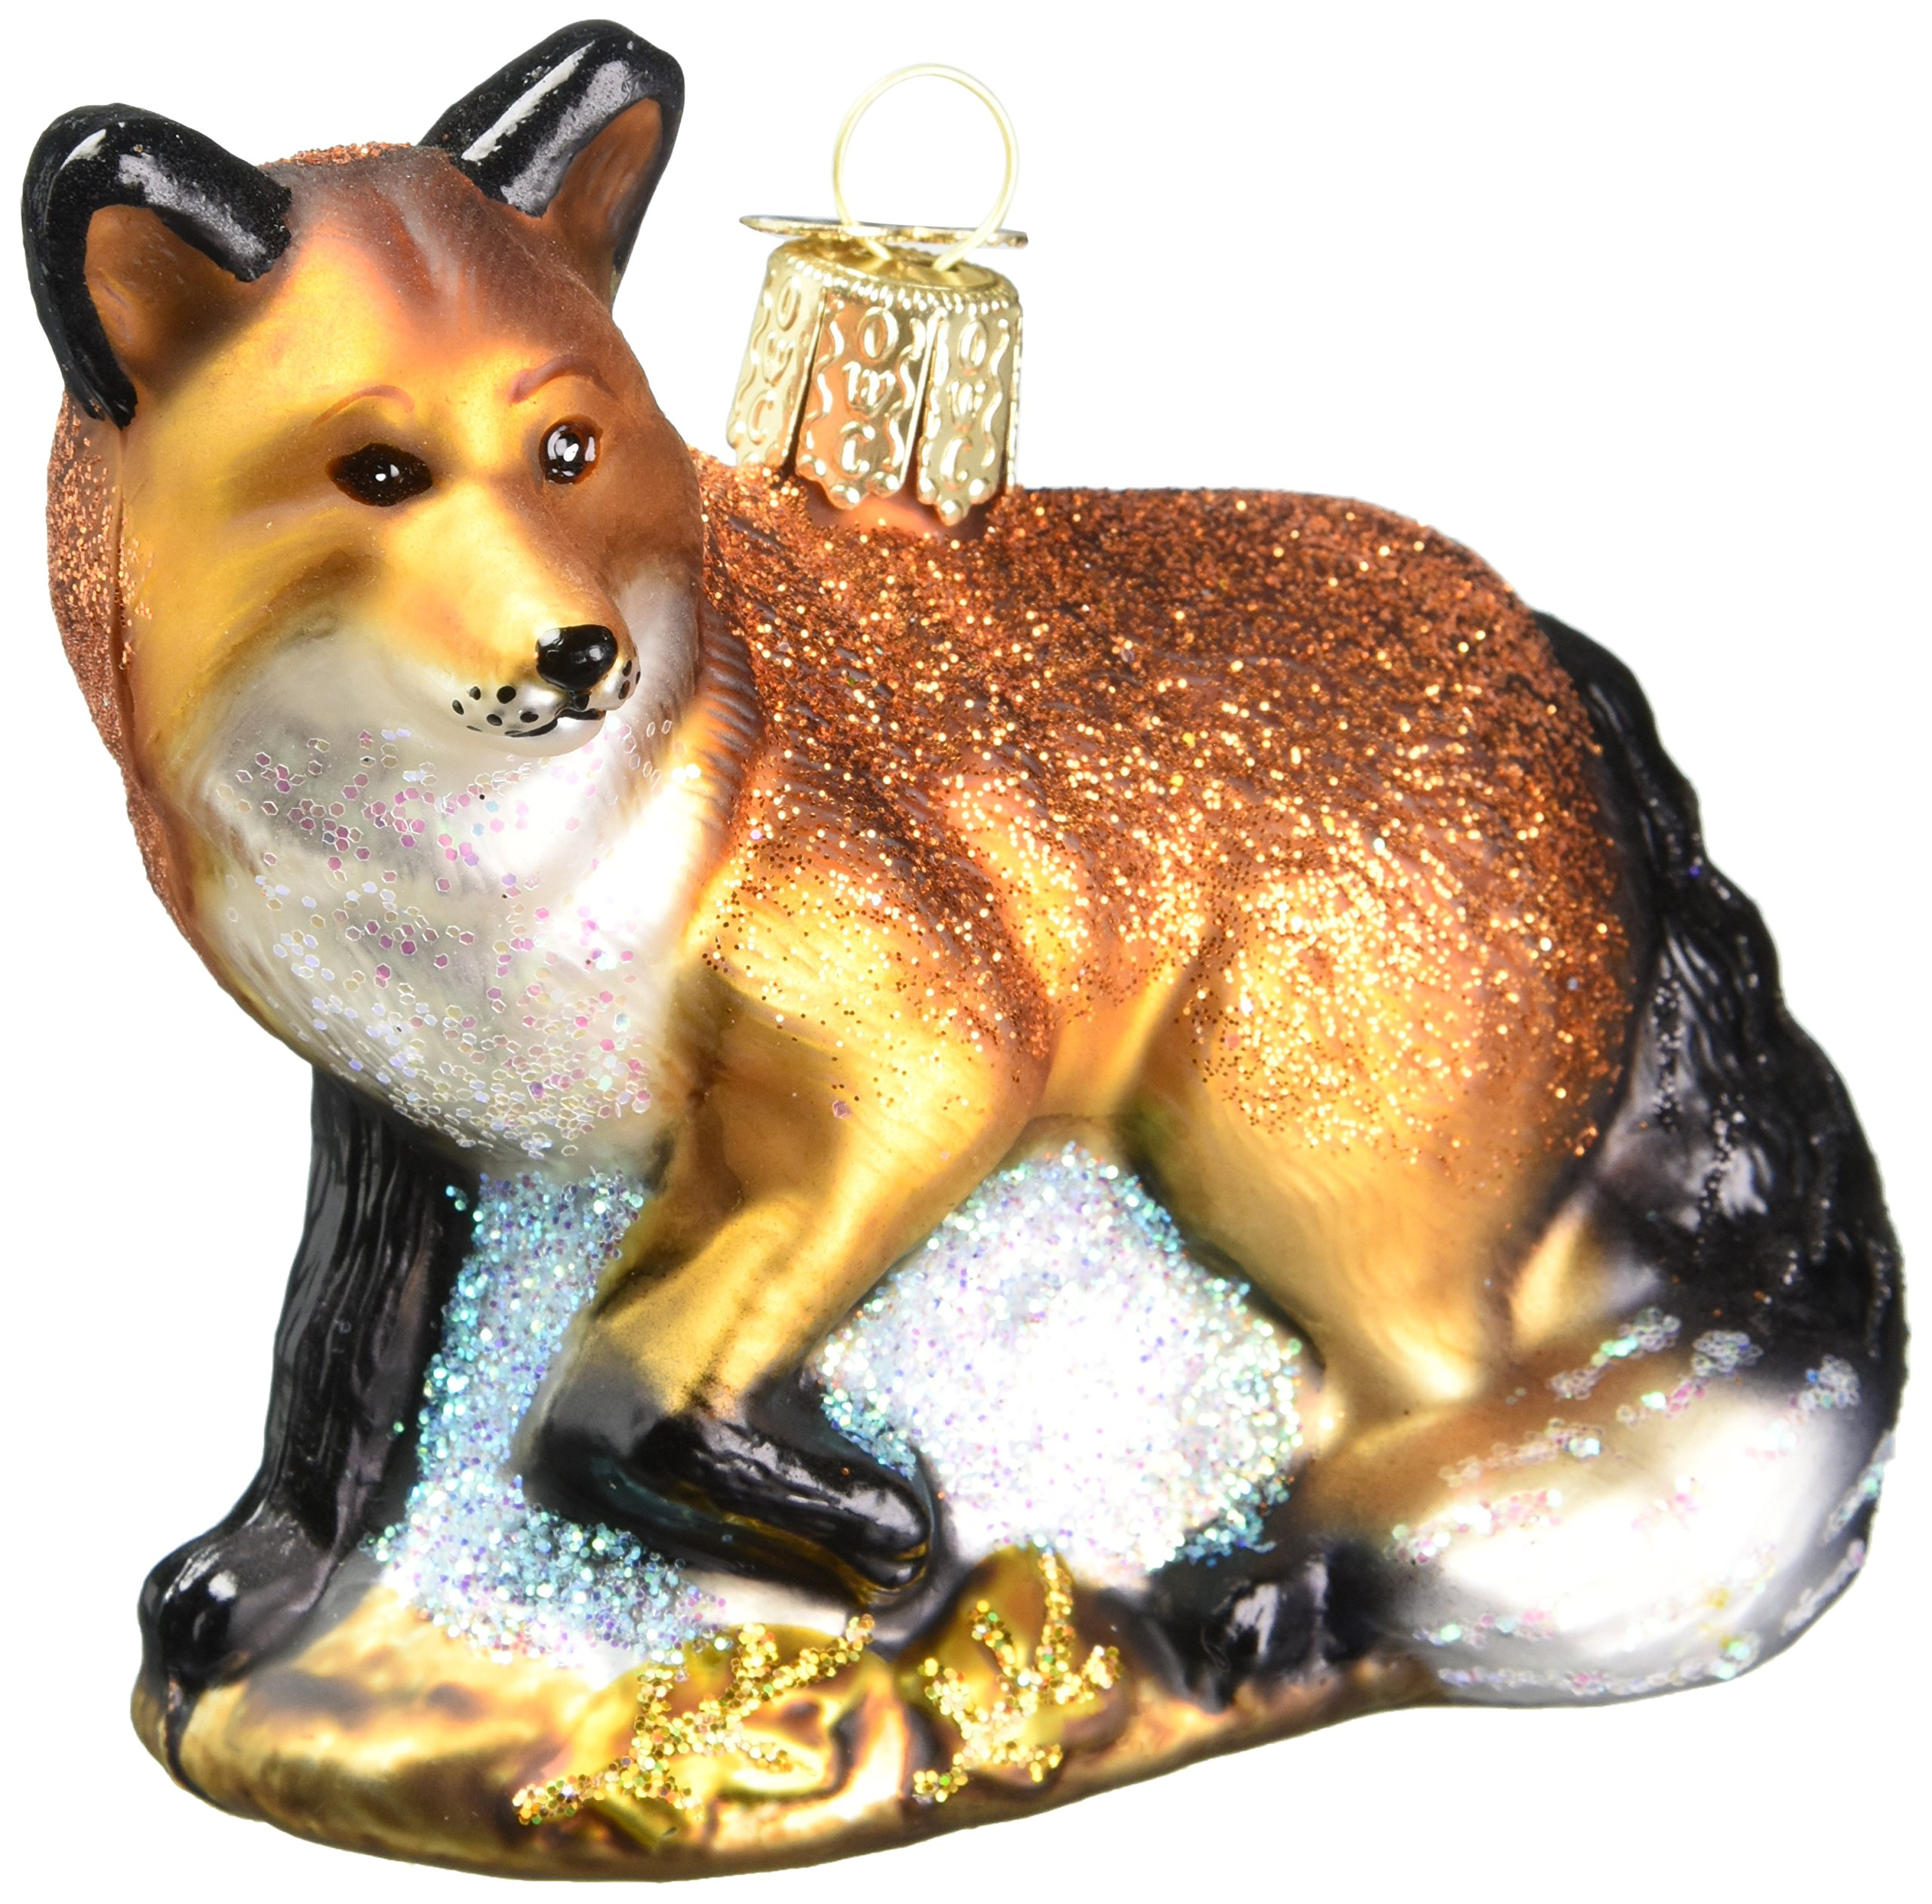 Old World Christmas Ornaments: Red Fox Glass Blown Ornaments for Christmas Tree